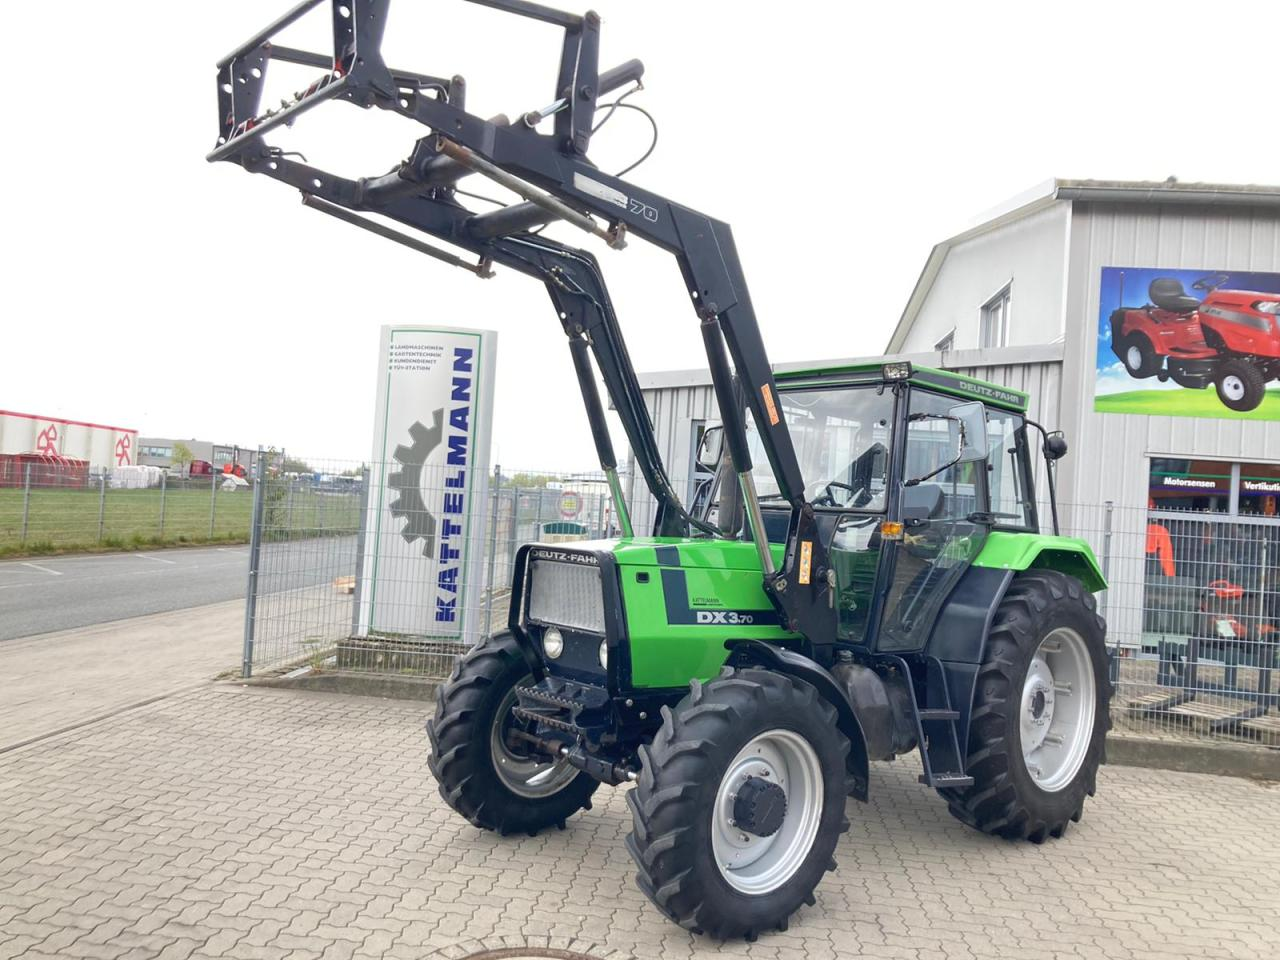 Deutz-Fahr DX 3.70 Star Cab